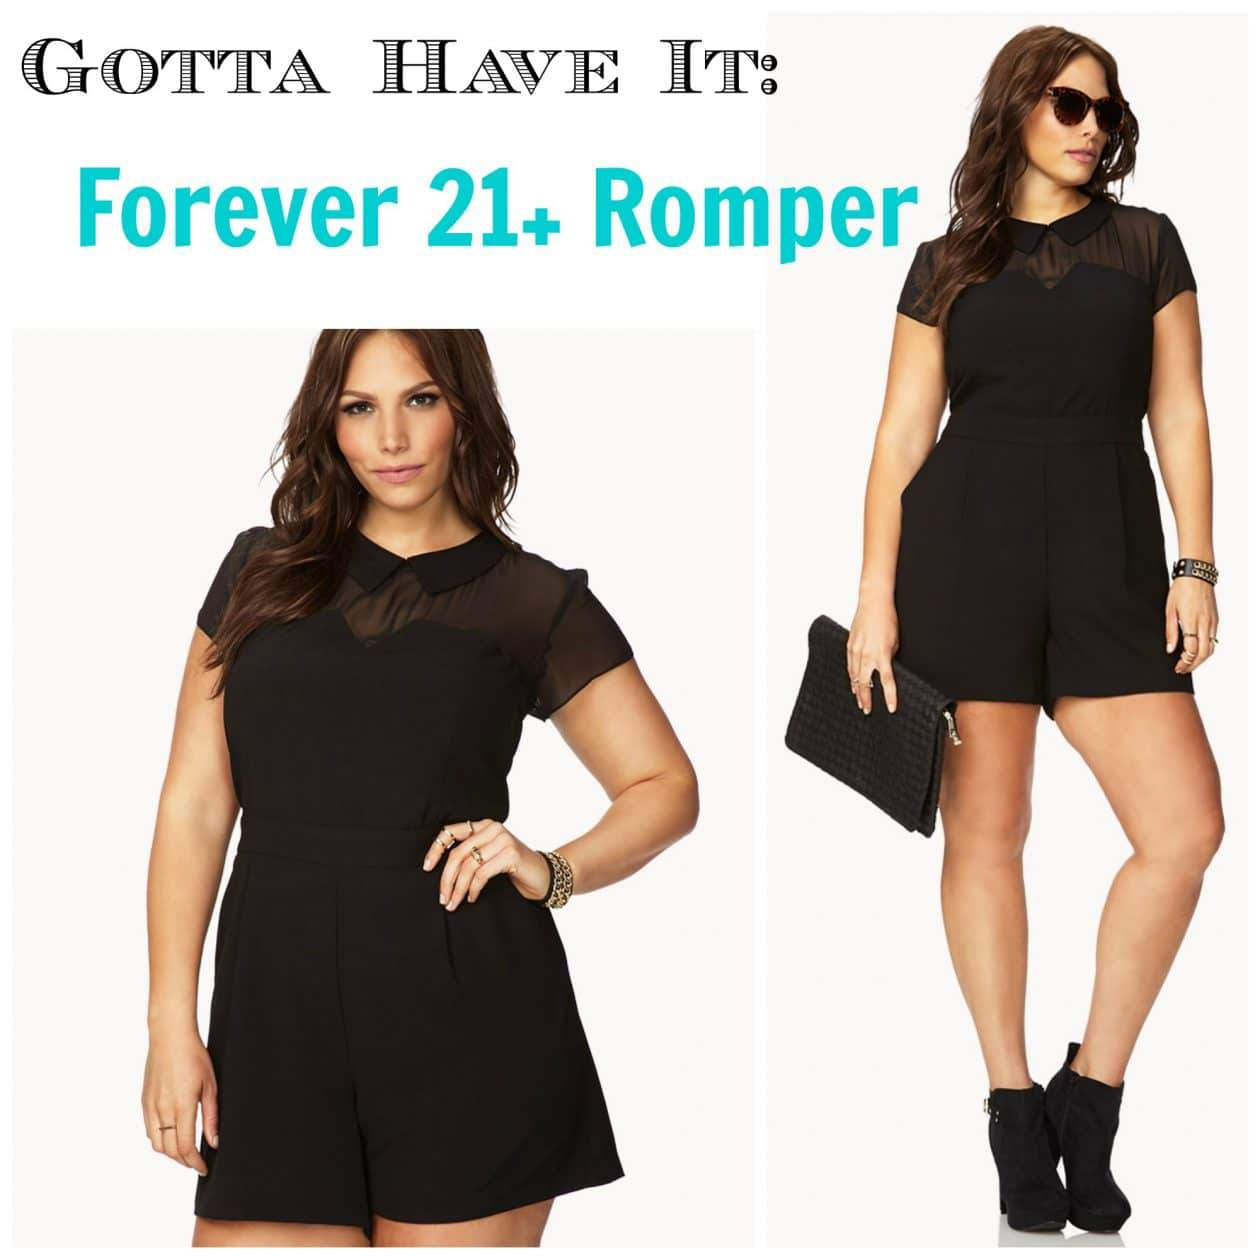 b285a50525 Forever 21 Plus Size Romper Feature